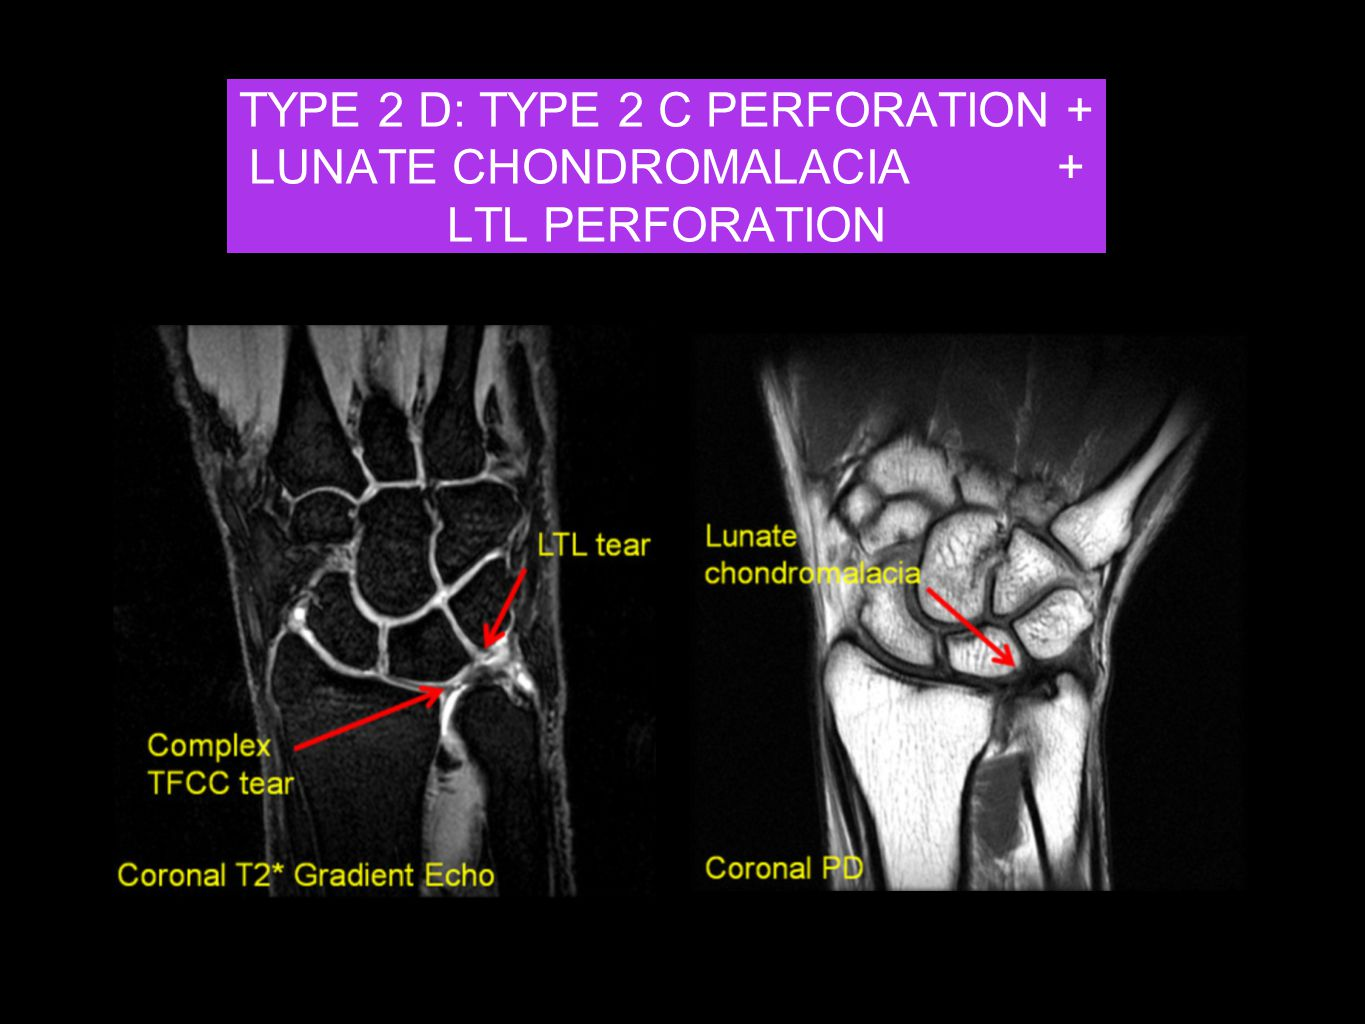 TYPE 2 D: TYPE 2 C PERFORATION + LUNATE CHONDROMALACIA +